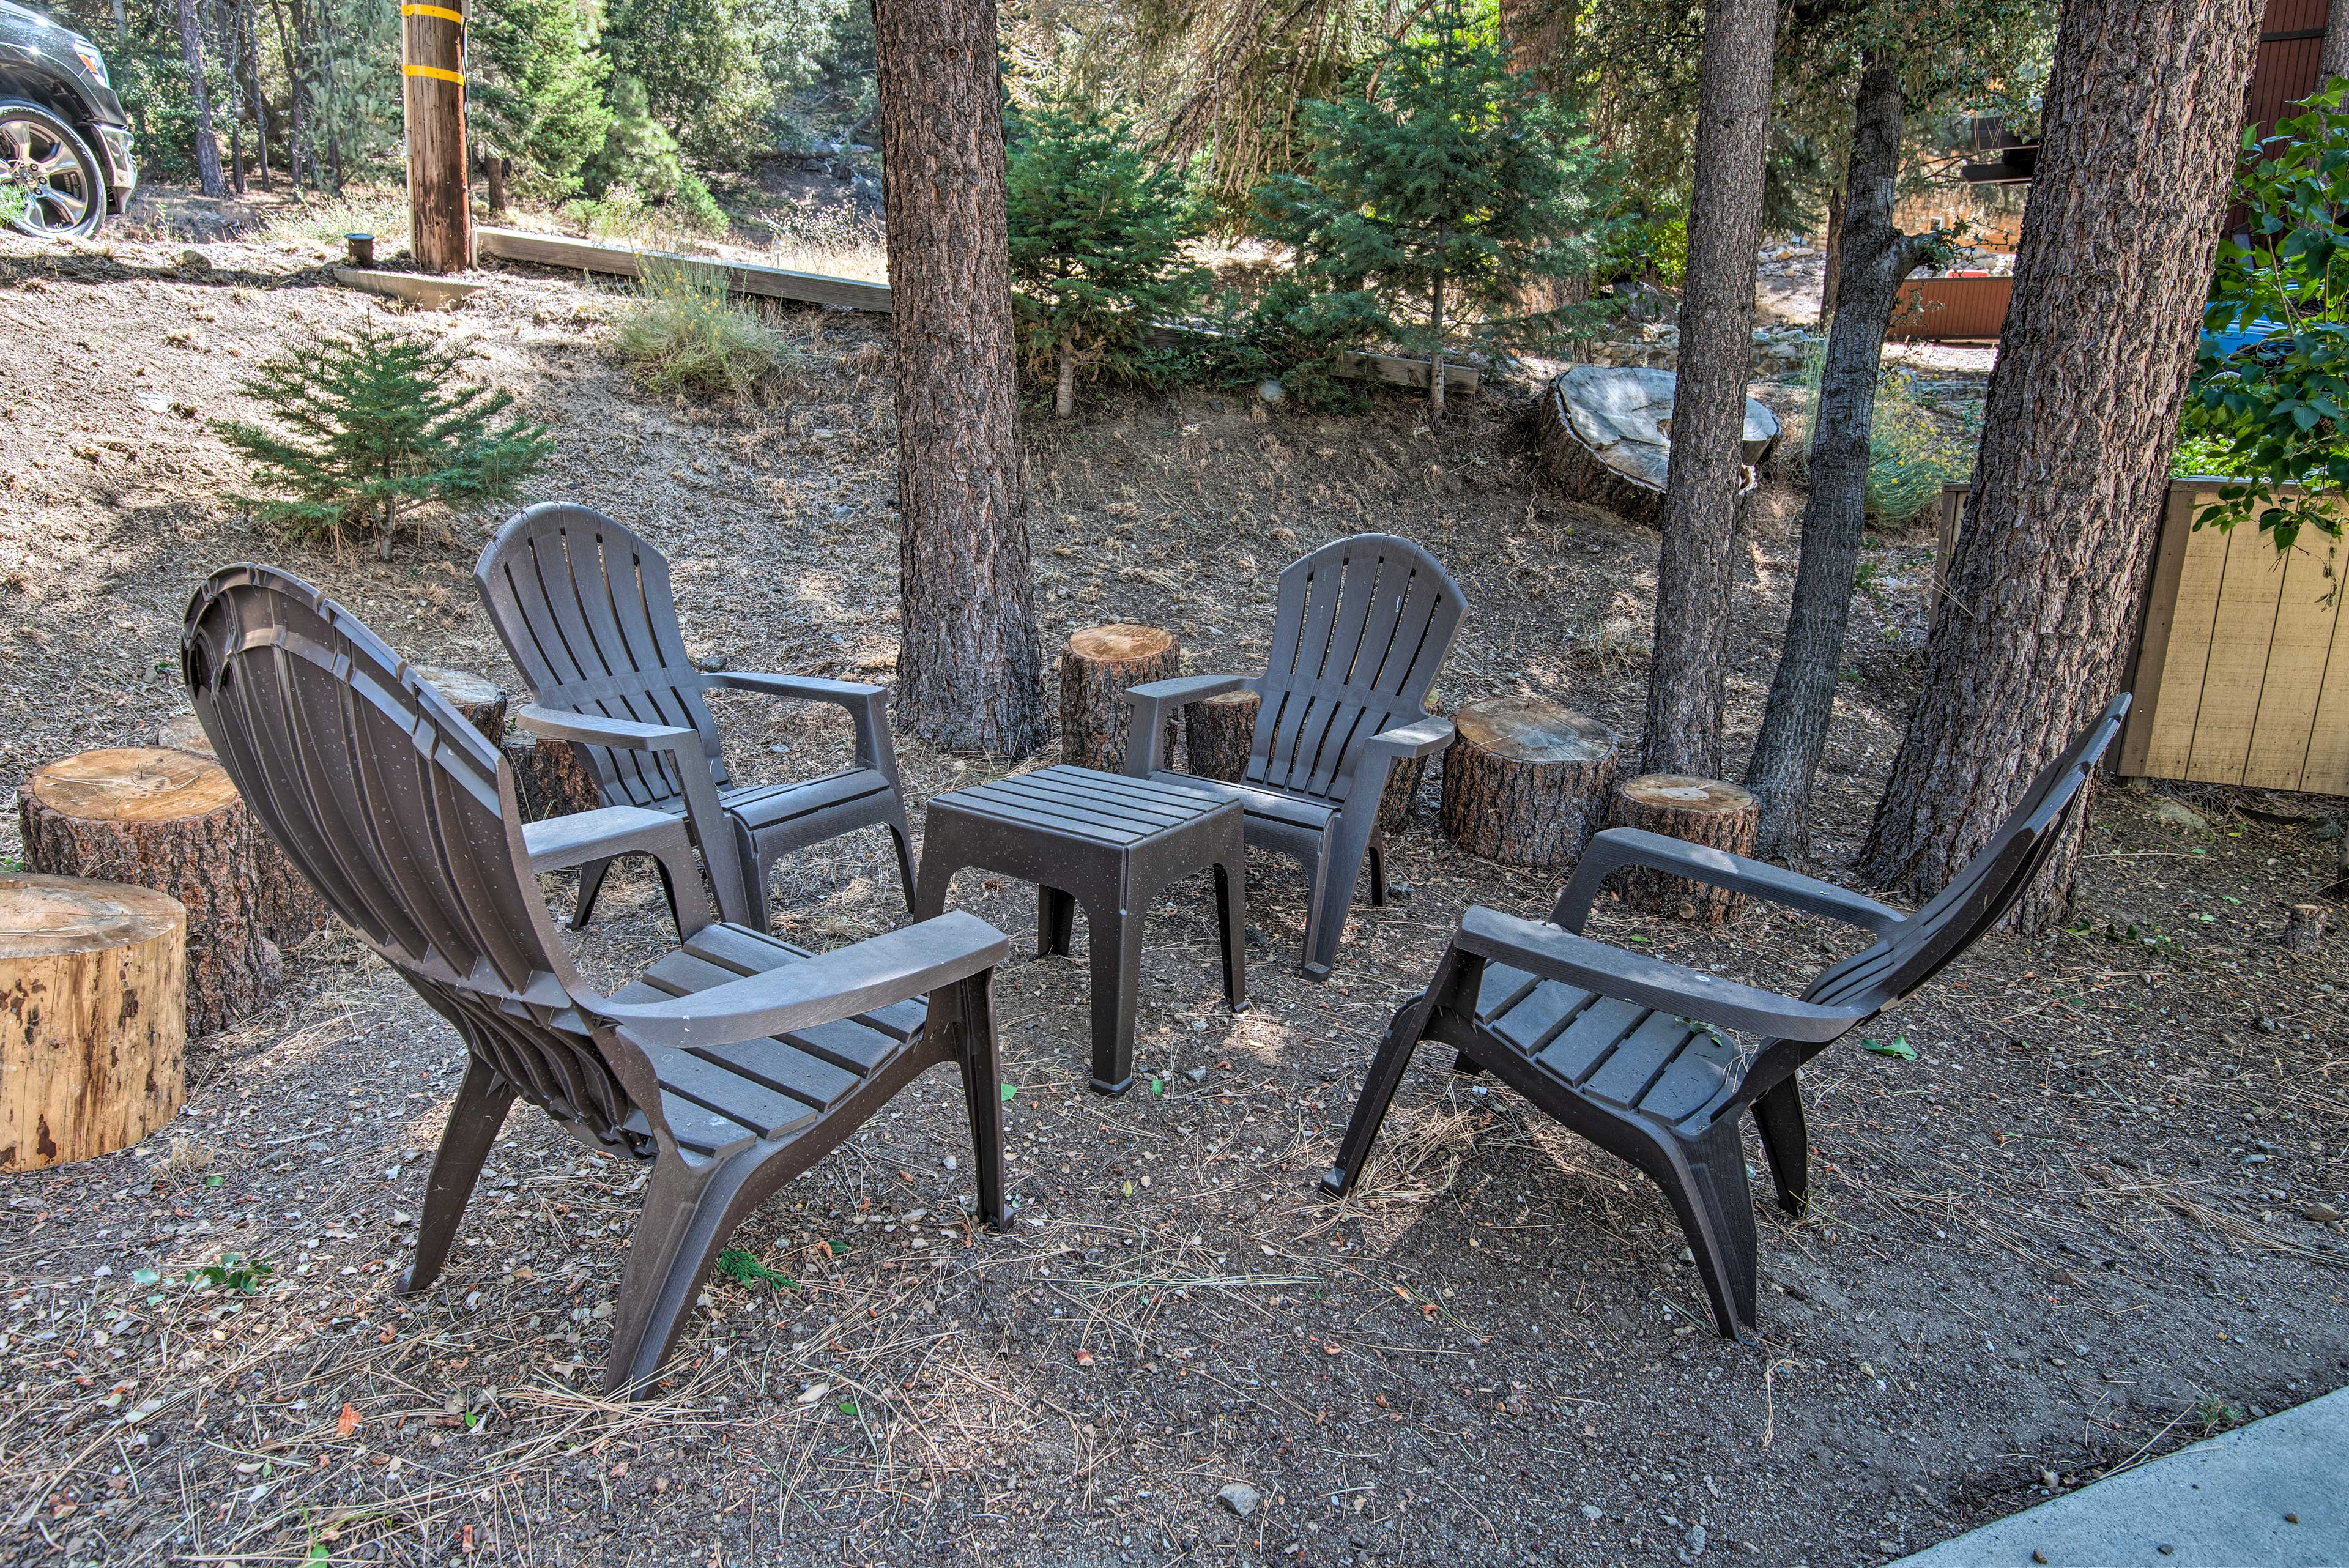 Relax outdoors with loved ones.